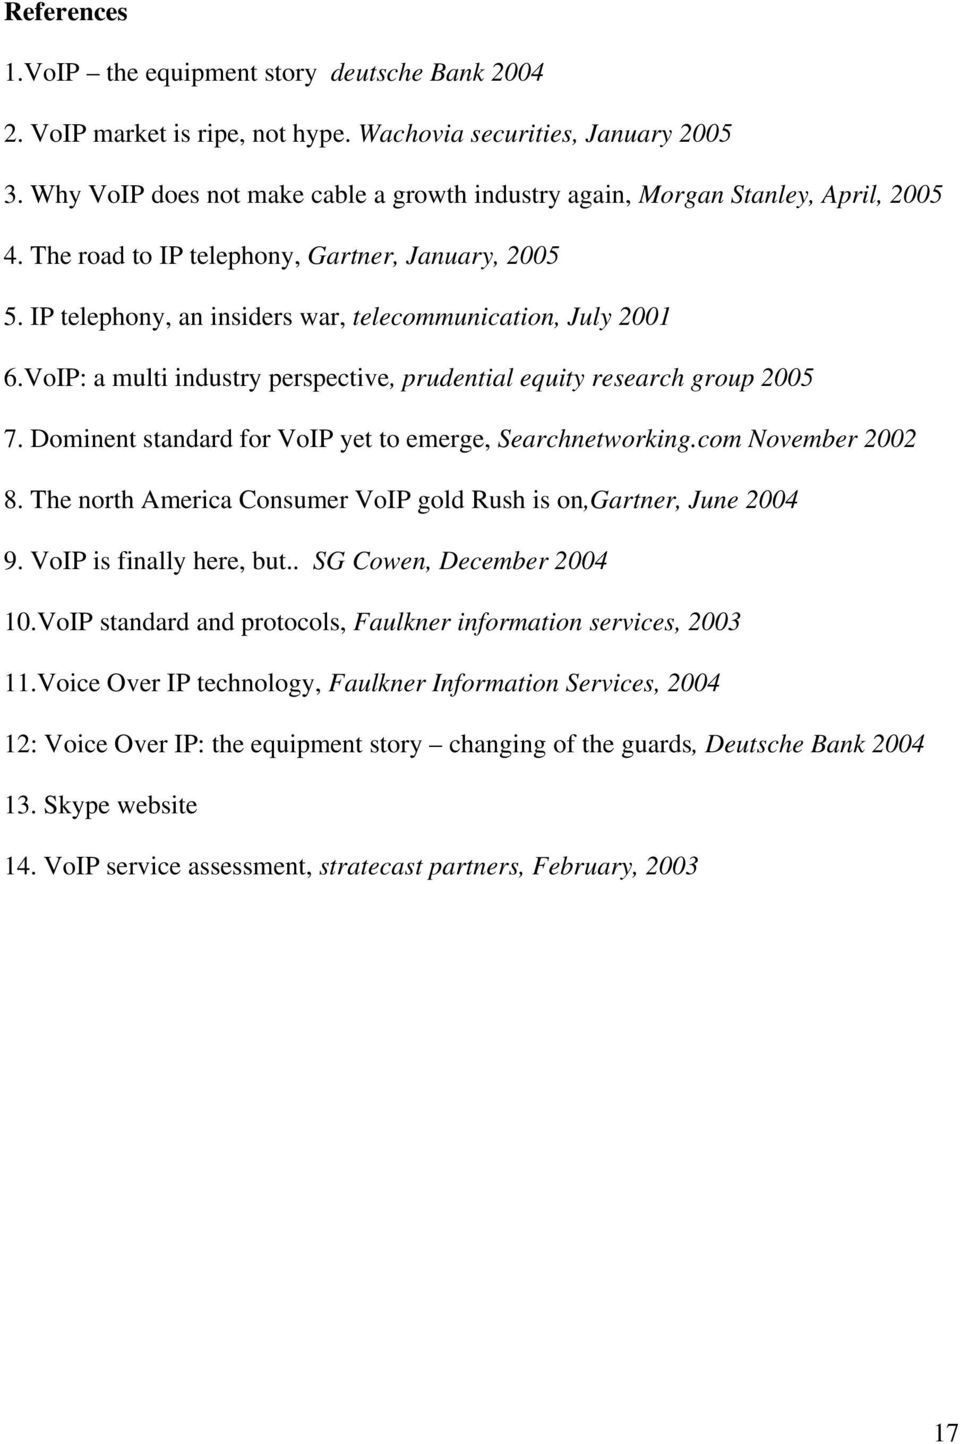 VoIP: a multi industry perspective, prudential equity research group 2005 7. Dominent standard for VoIP yet to emerge, Searchnetworking.com November 2002 8.